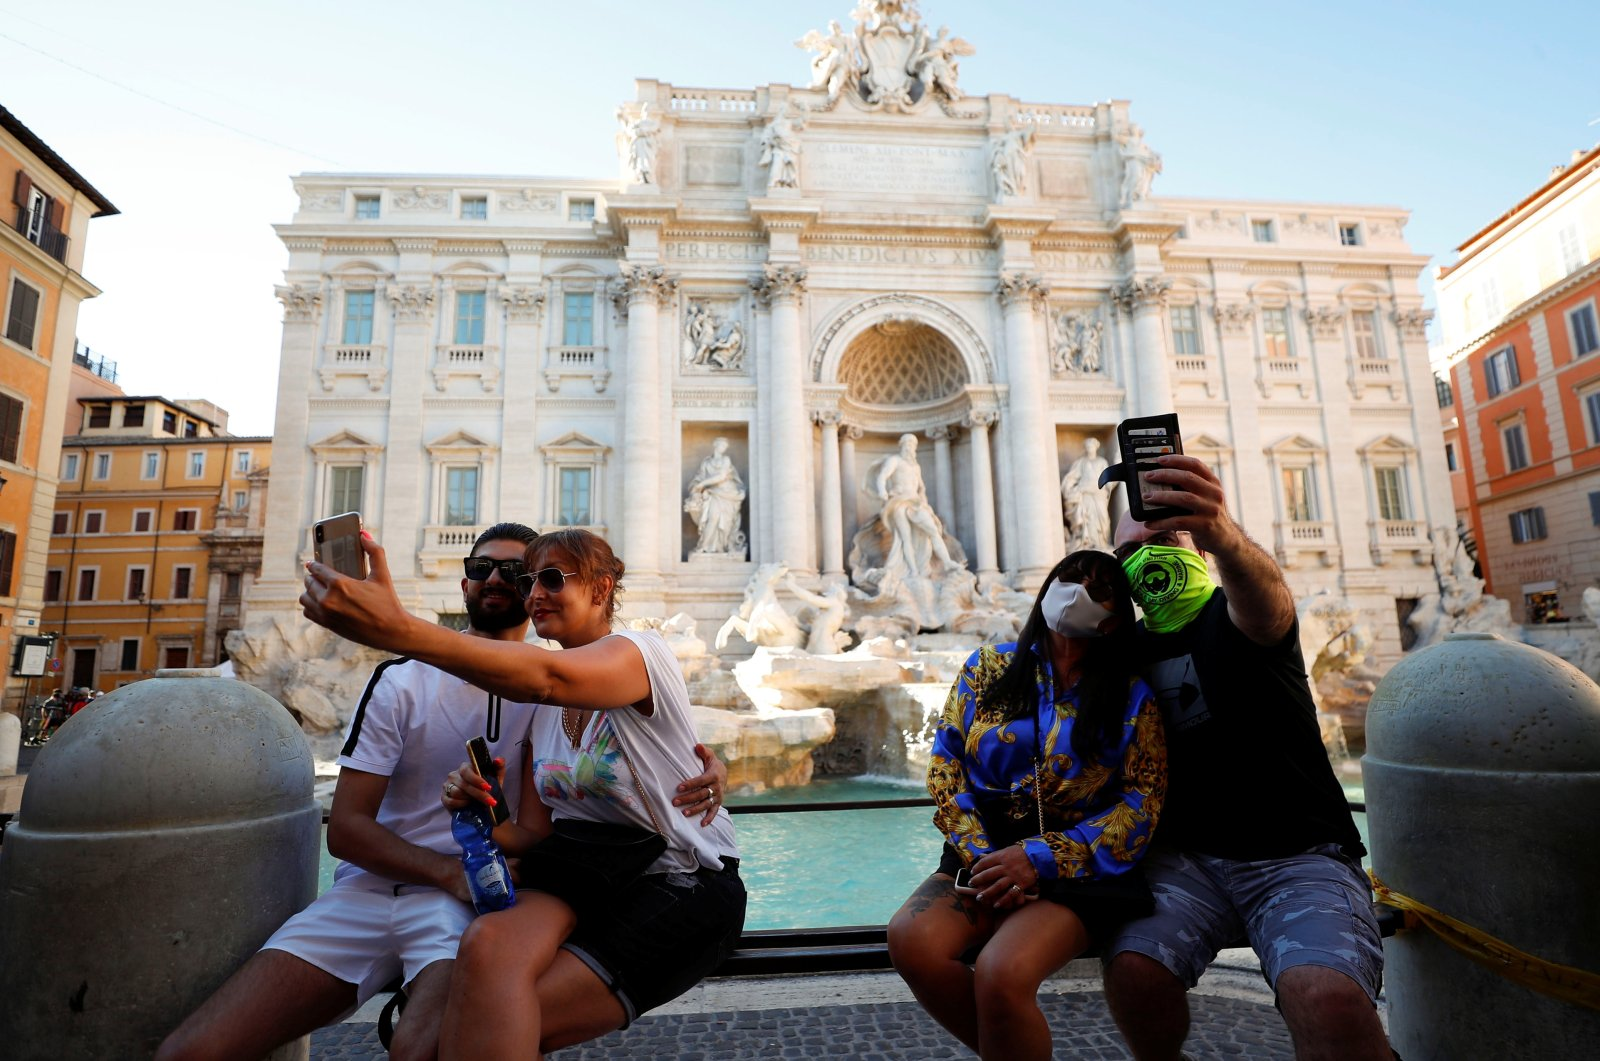 A couple wears face masks while other couple does not as they both take selfies in front of Rome's Trevi Fountain following a government decree that states face coverings must be worn between 6 p.m. and 6 a.m. in areas where gatherings are common, Aug. 19, 2020. (REUTERS Photo)